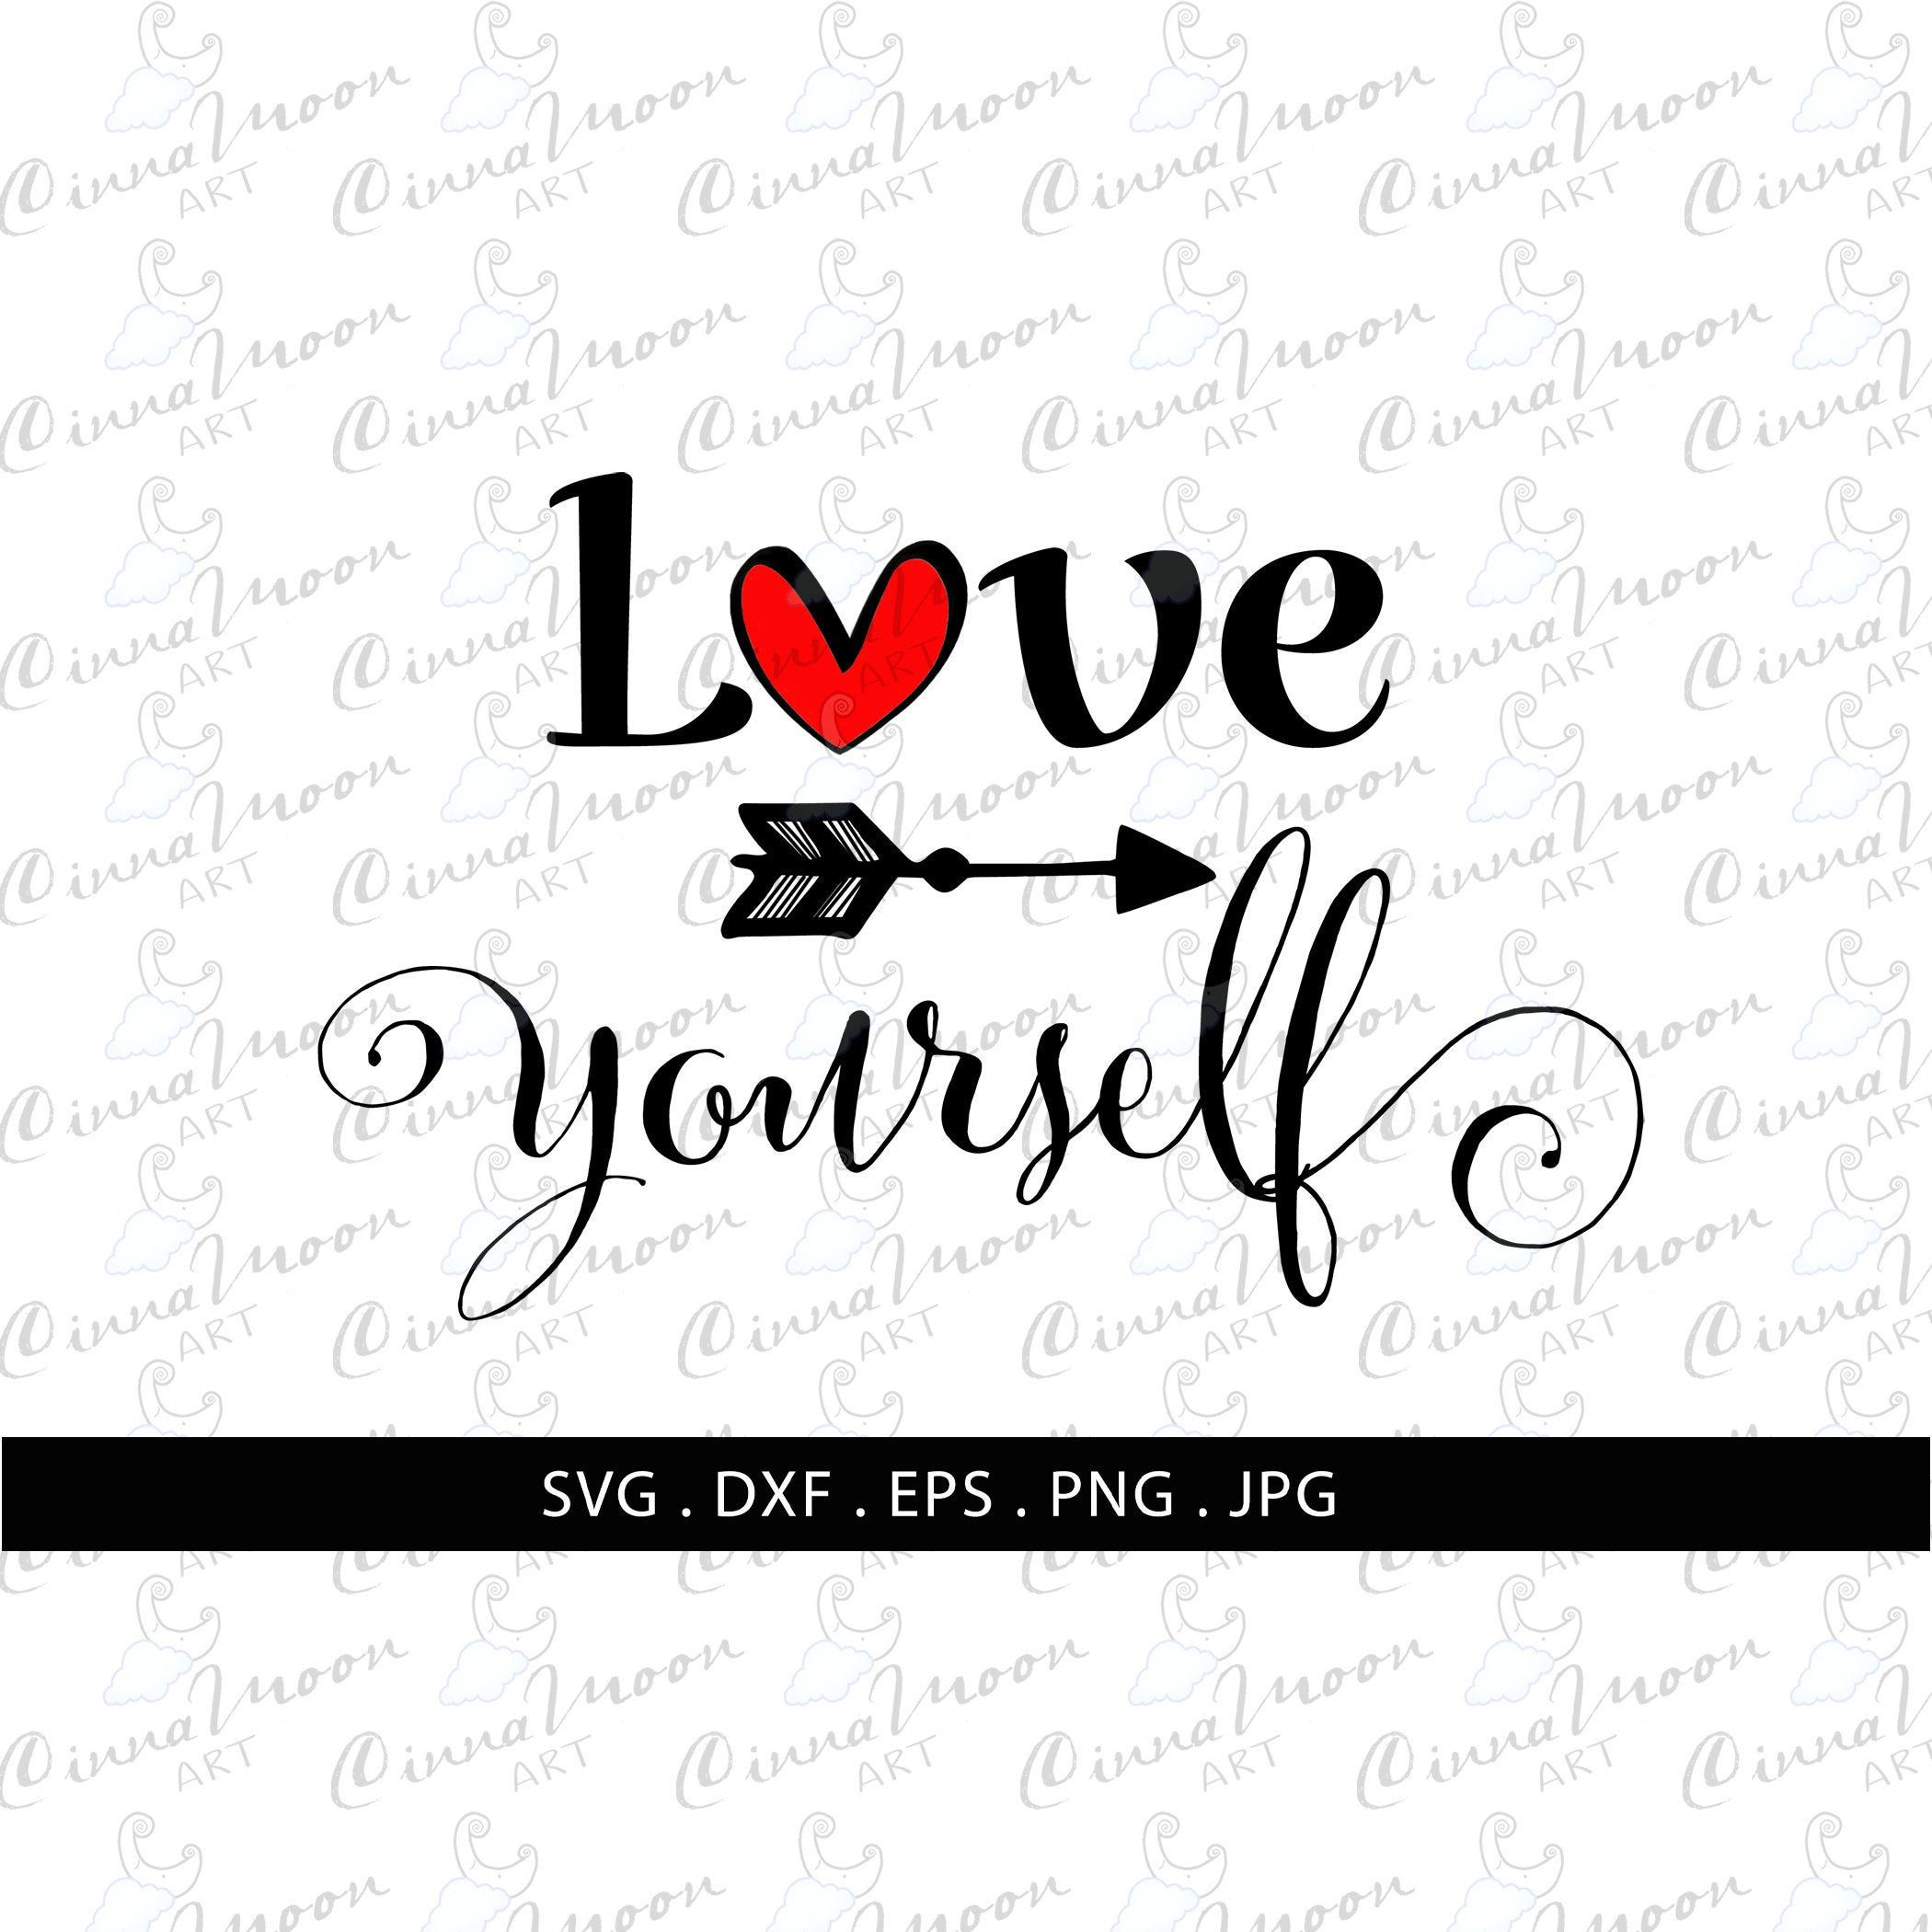 Download Love Yourself SVG-Love yourself-Love yourself png-Love ...